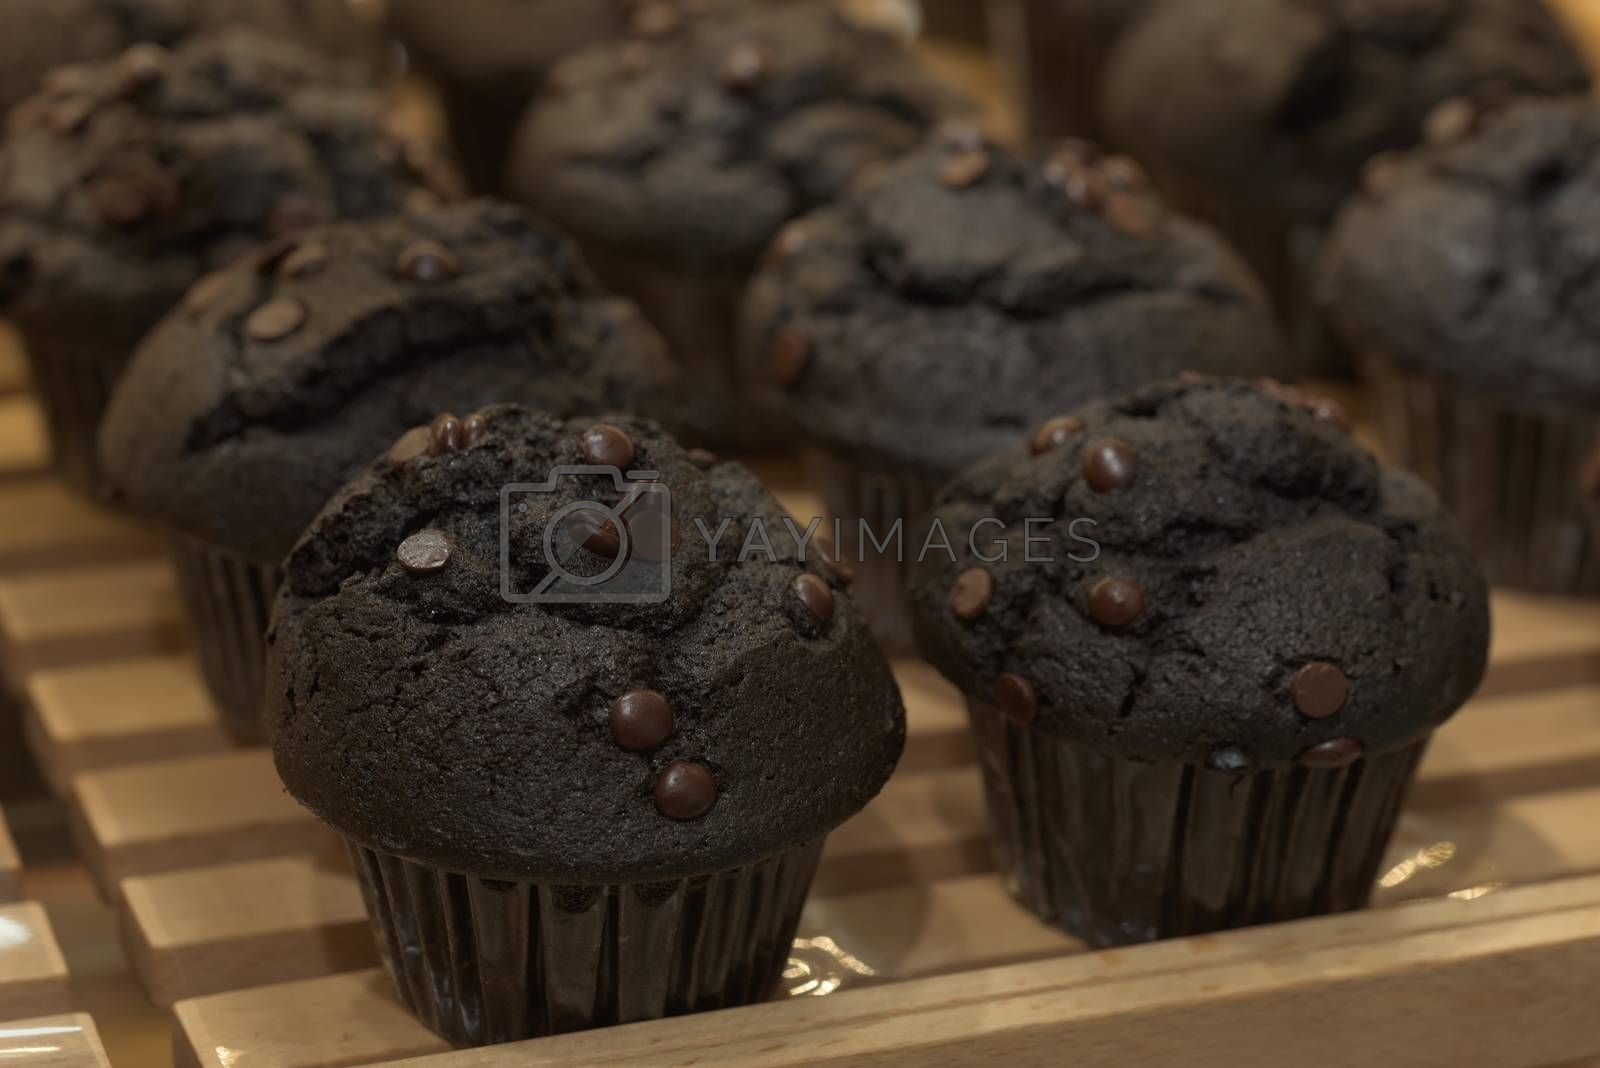 Chocolate cupcakes. Black cupcakes on a pallet